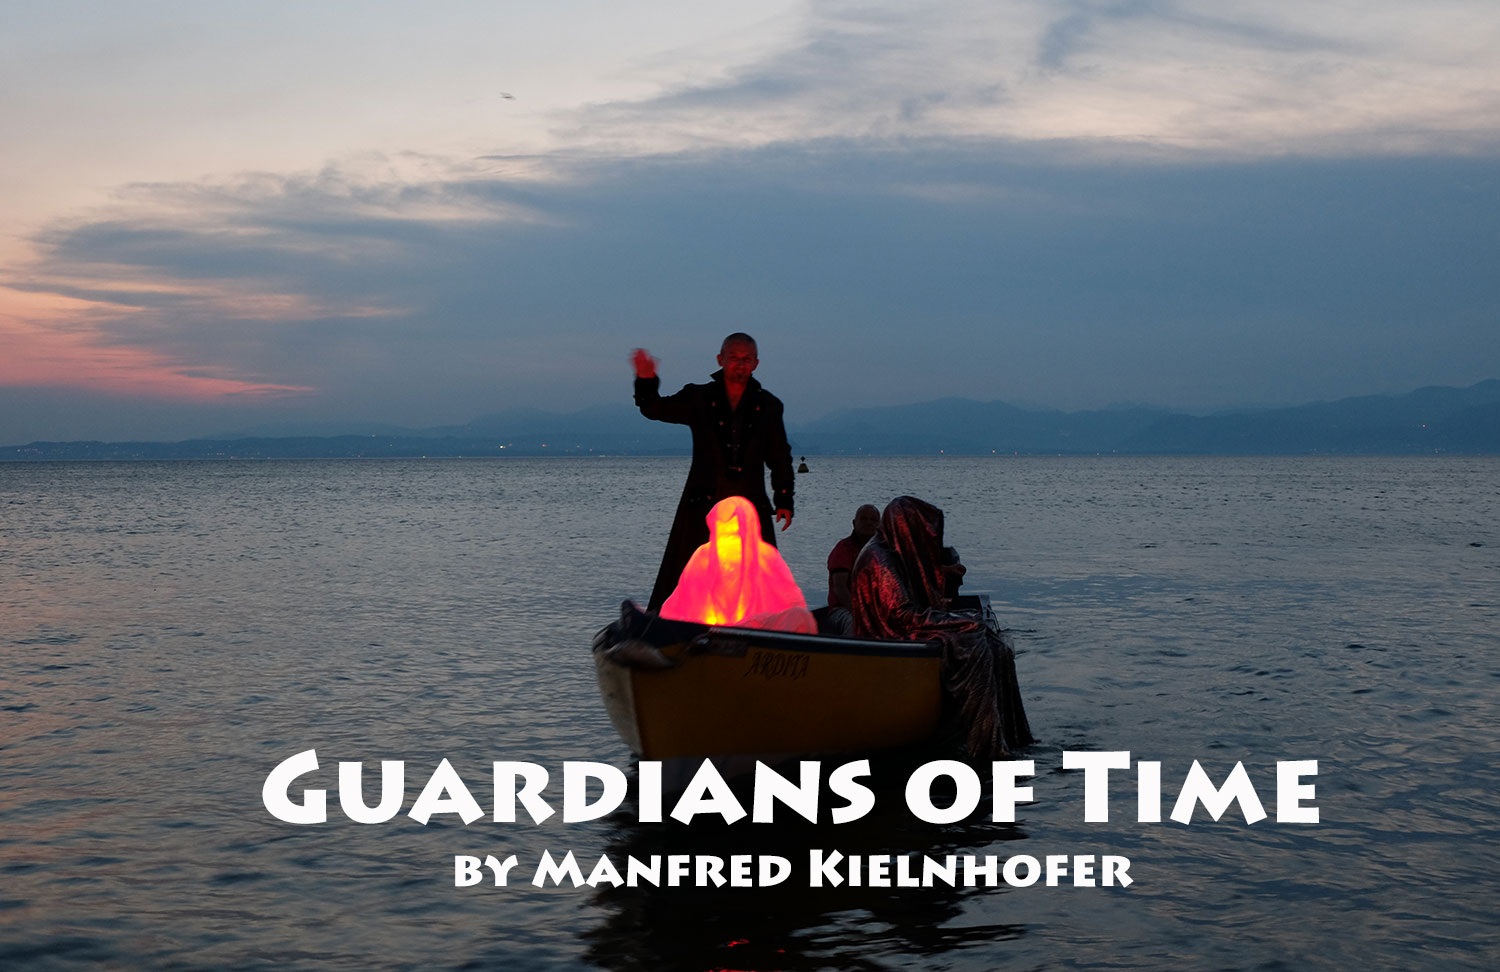 lazise-largo-de-guarda-italia--kouba-designkooperative-austria-guardians-of-time-manfred-kili-kielnhofer-contemporary-art-design-arts-arte-sculpture-theater-foto-film-performnce-avalon-ferryman-3809-